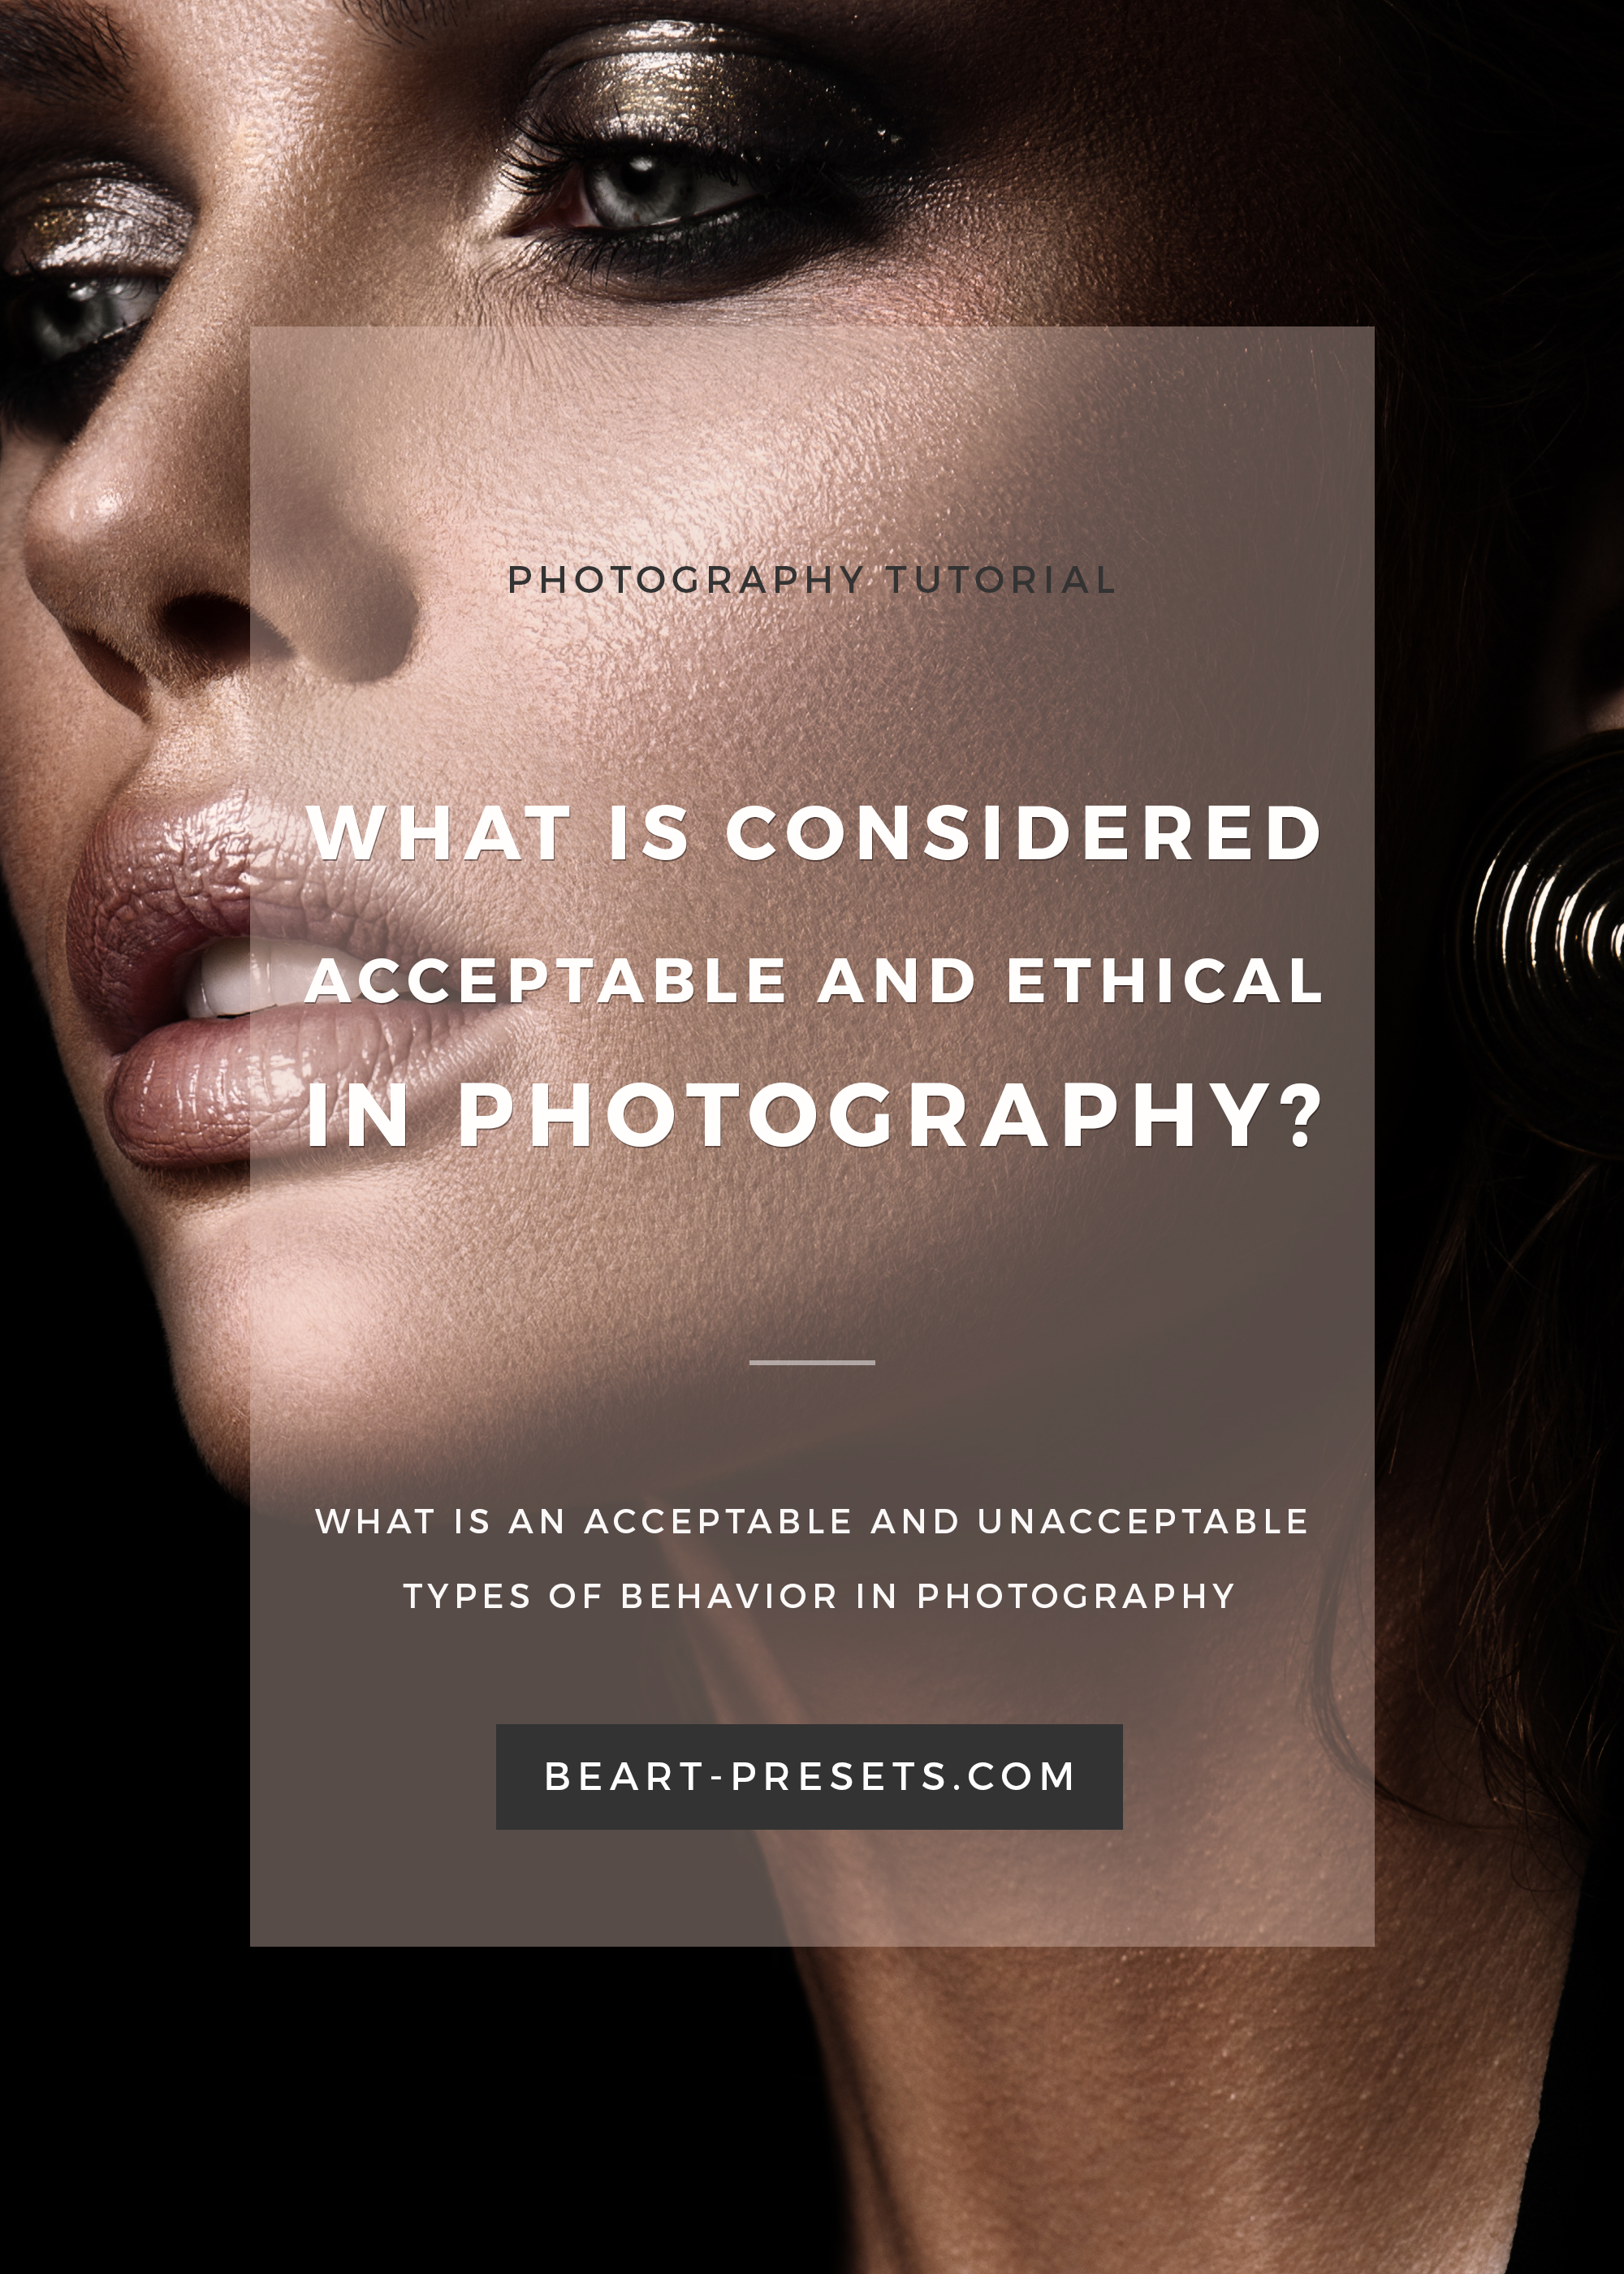 WHAT IS CONSIDERED ACCEPTABLE AND ETHICAL IN PHOTOGRAPHY?